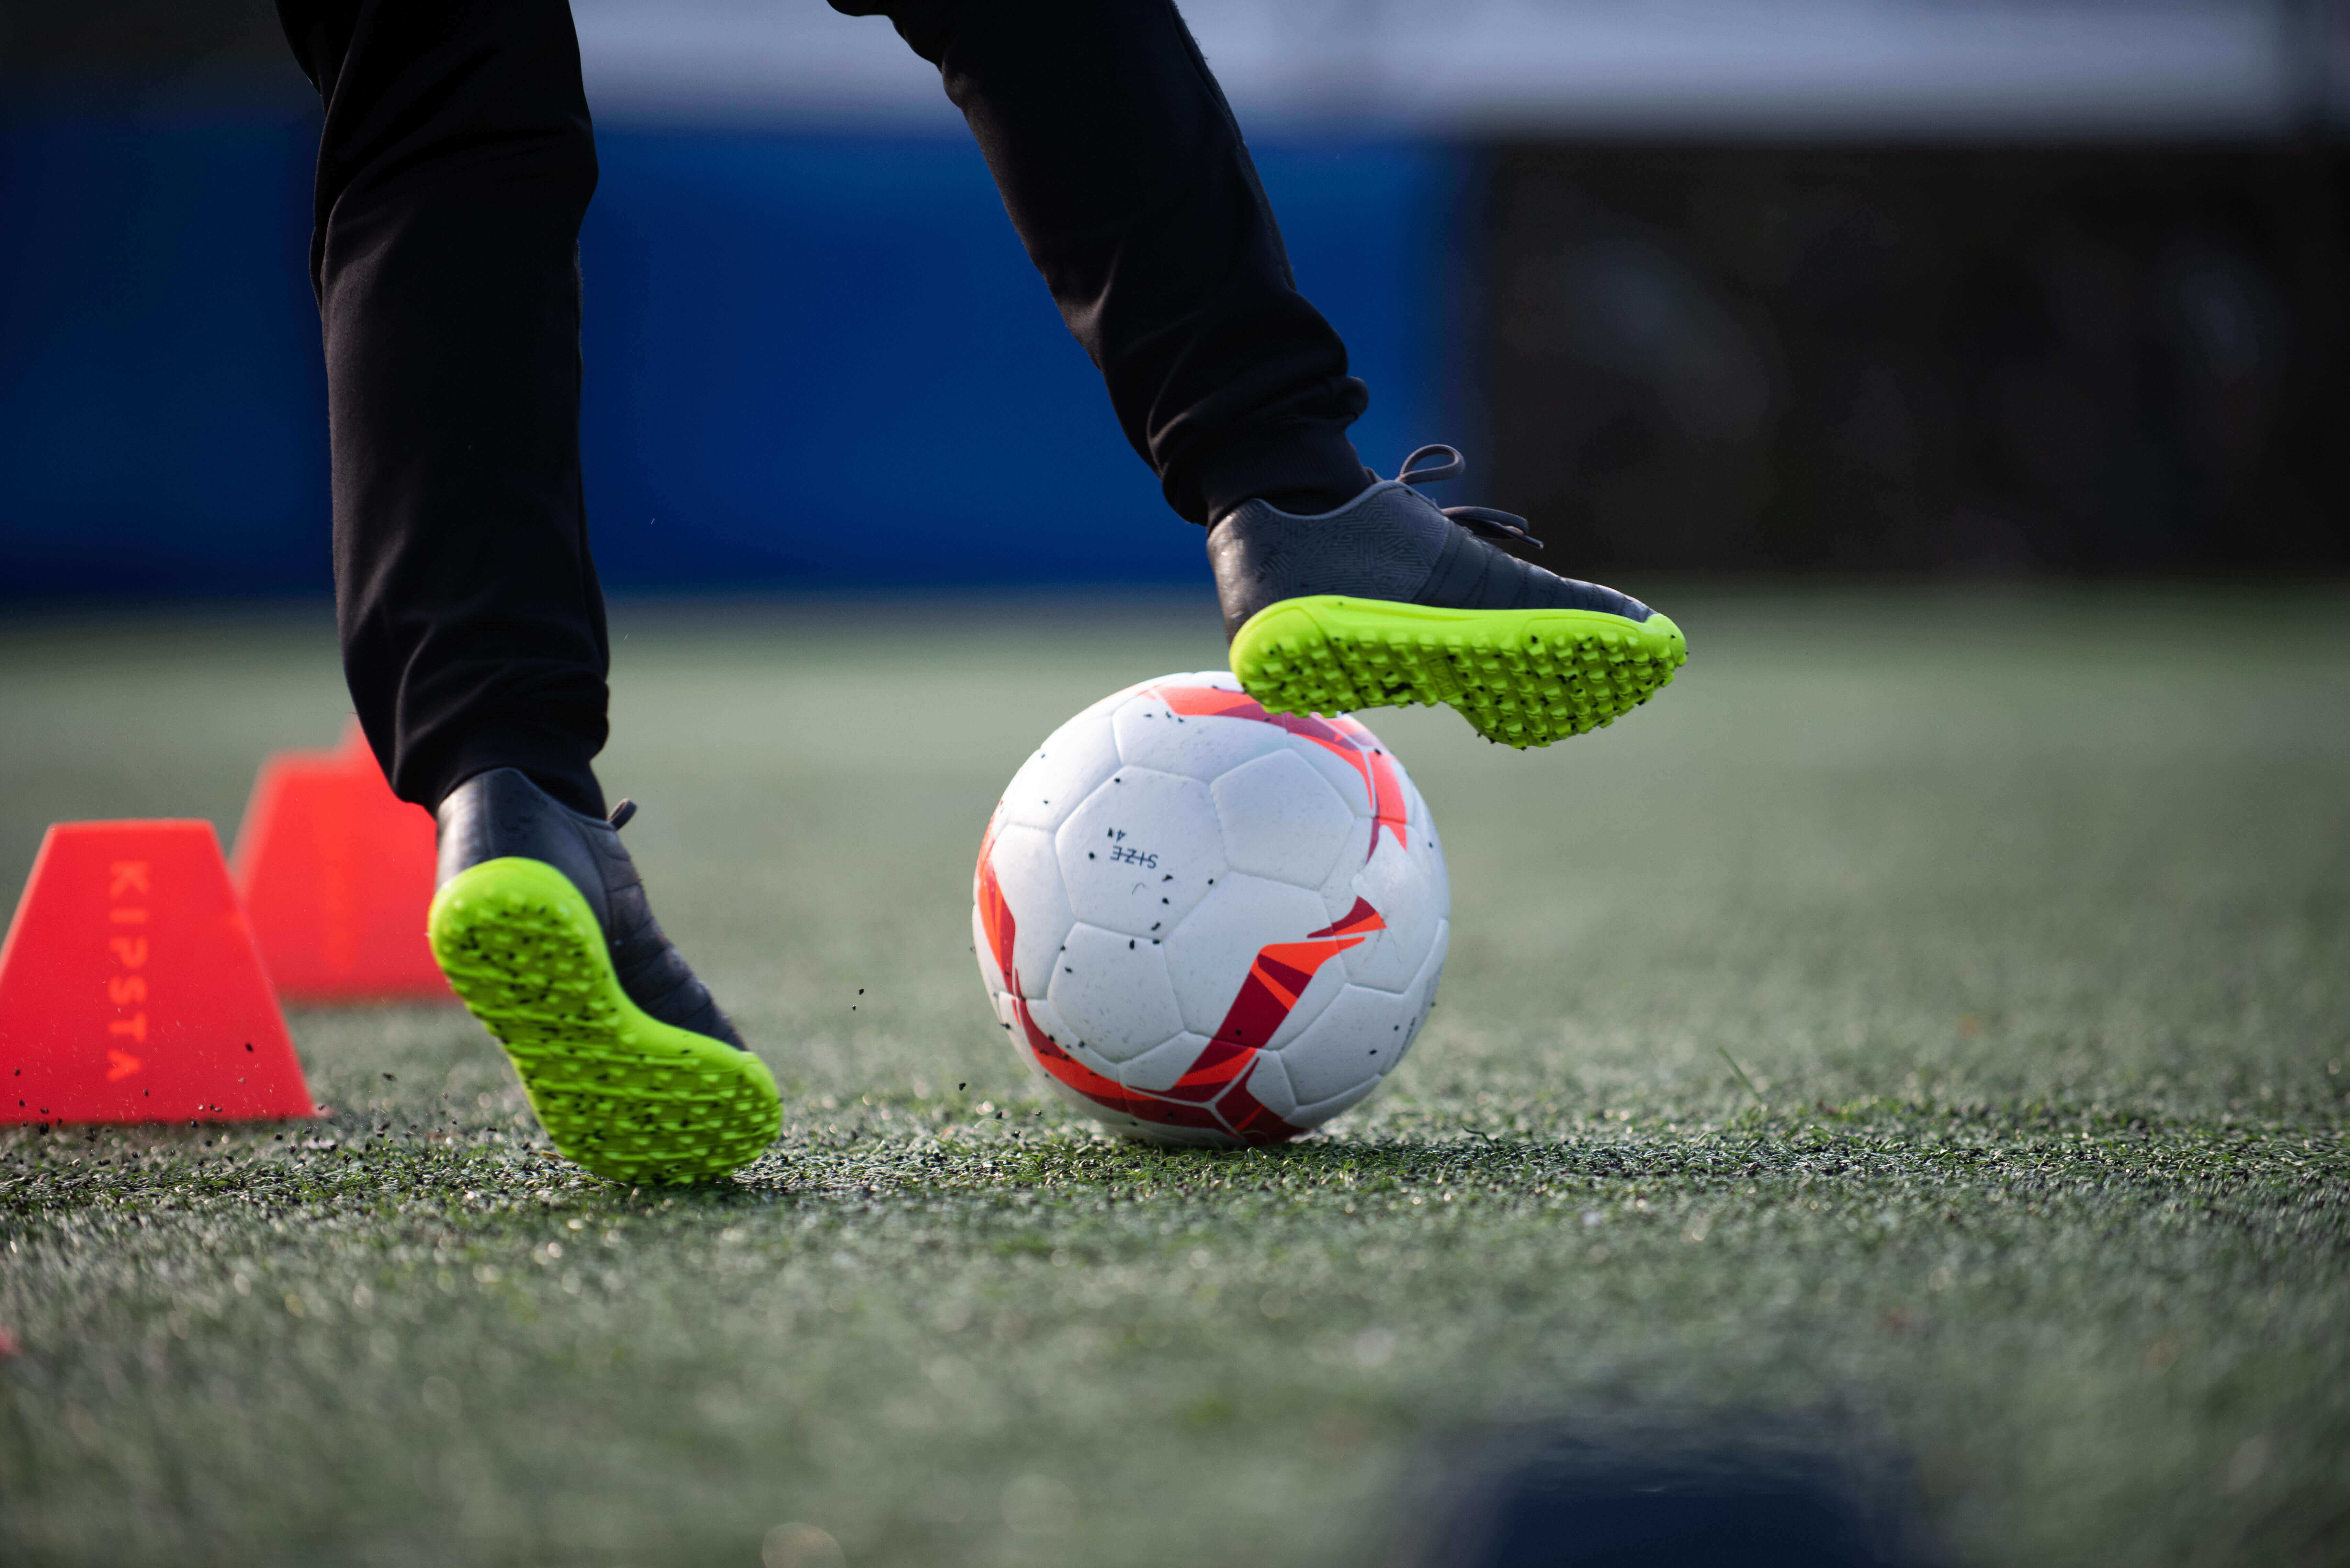 Football: How to Take Care of Your Feet?